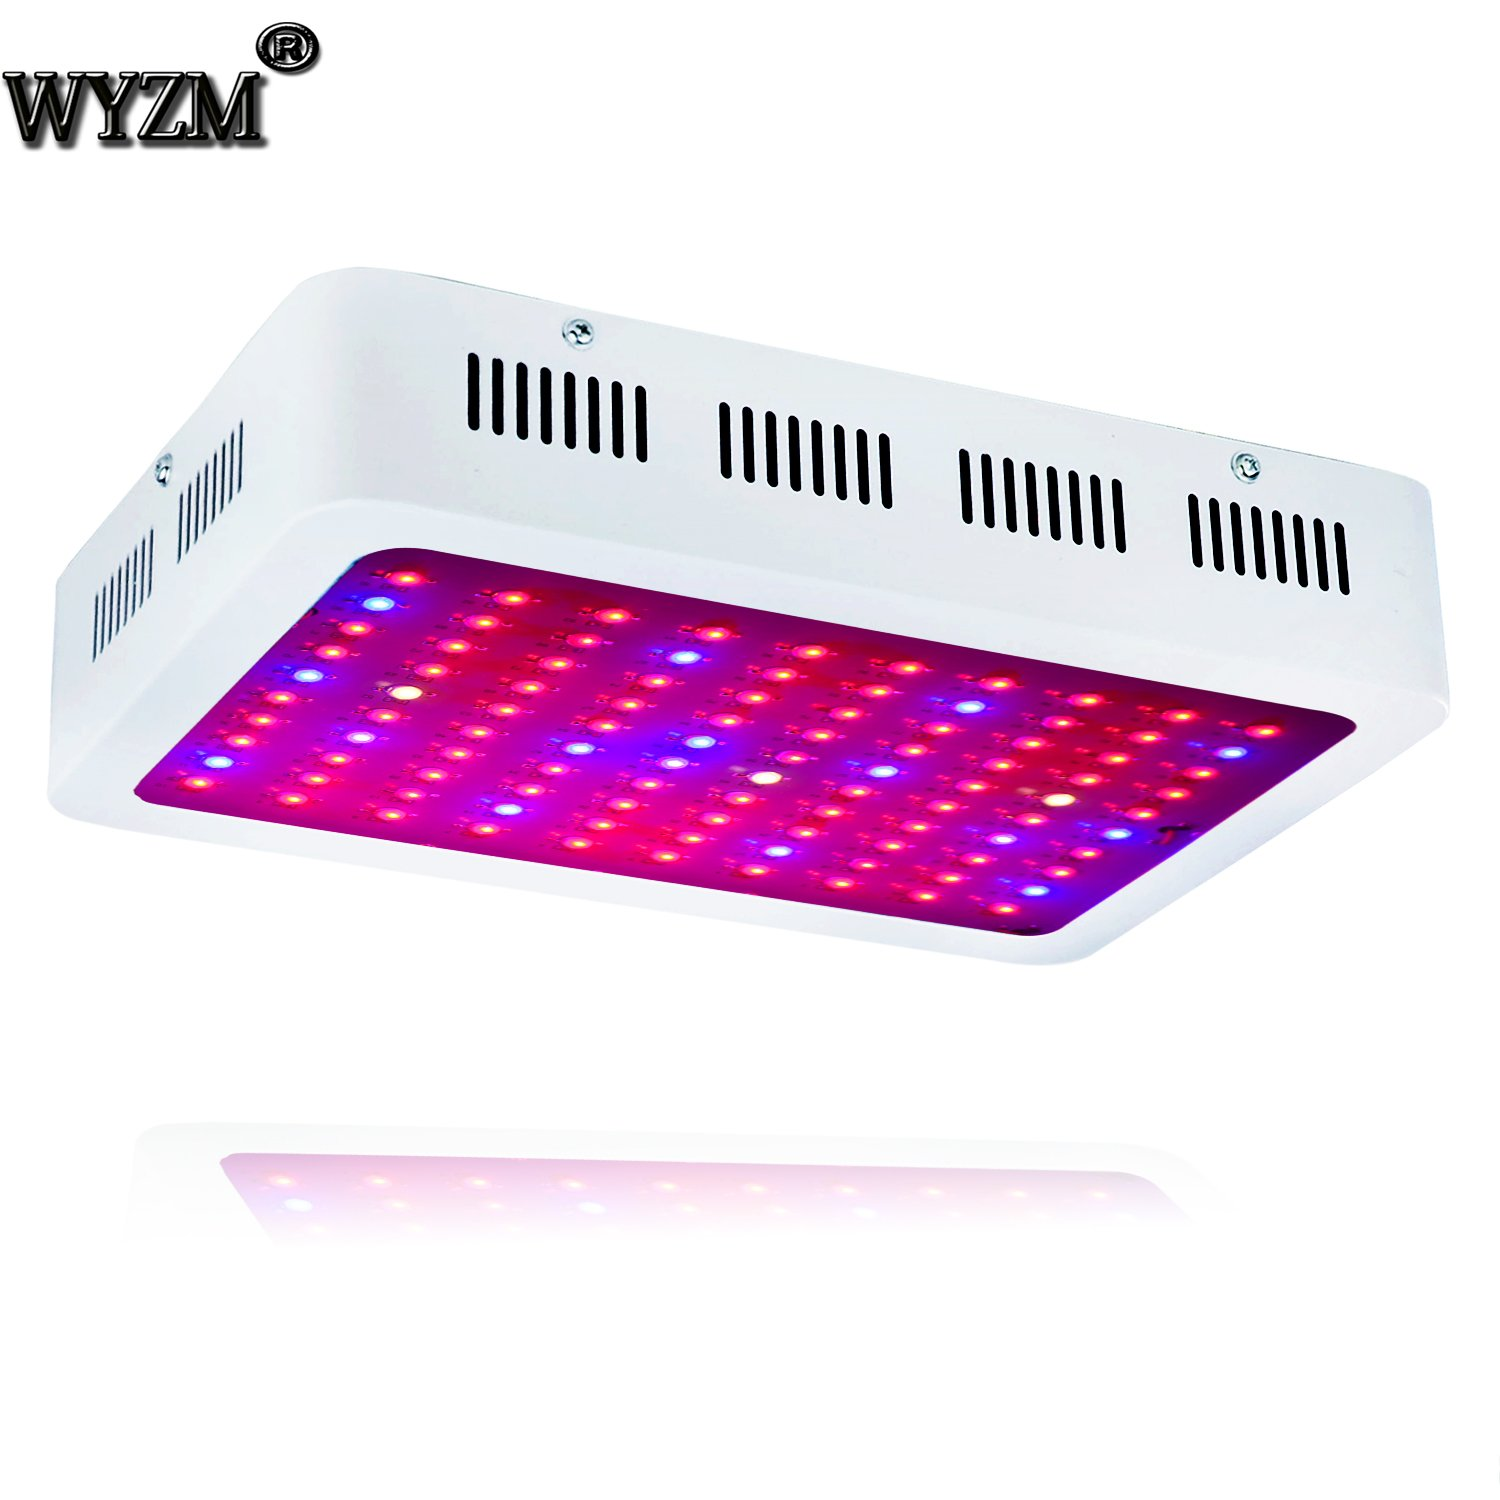 1000W Full Spectrum LED Grow Light,100-265V Input,Special Design for Indoor Growing Herbs and Plants (100X10W)